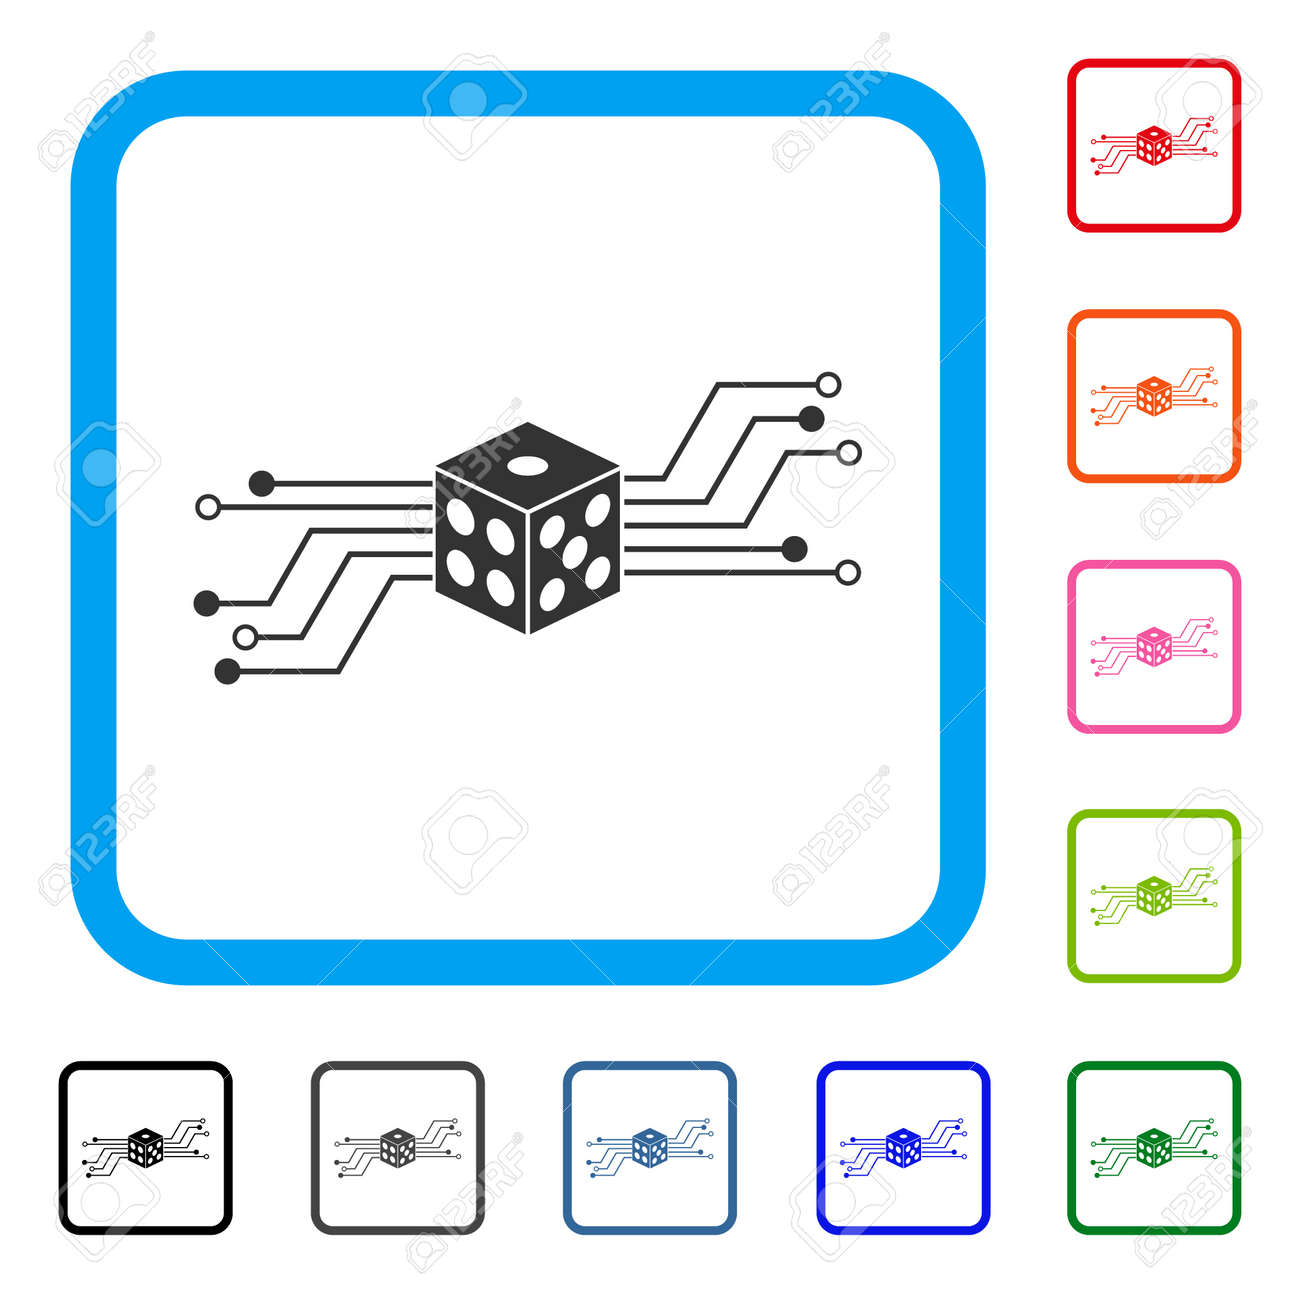 Digital Circuit Icon Manual Guide Wiring Diagram Electronic Dice Flat Gray Pictogram Symbol In Rounded Rh 123rf Com Construction